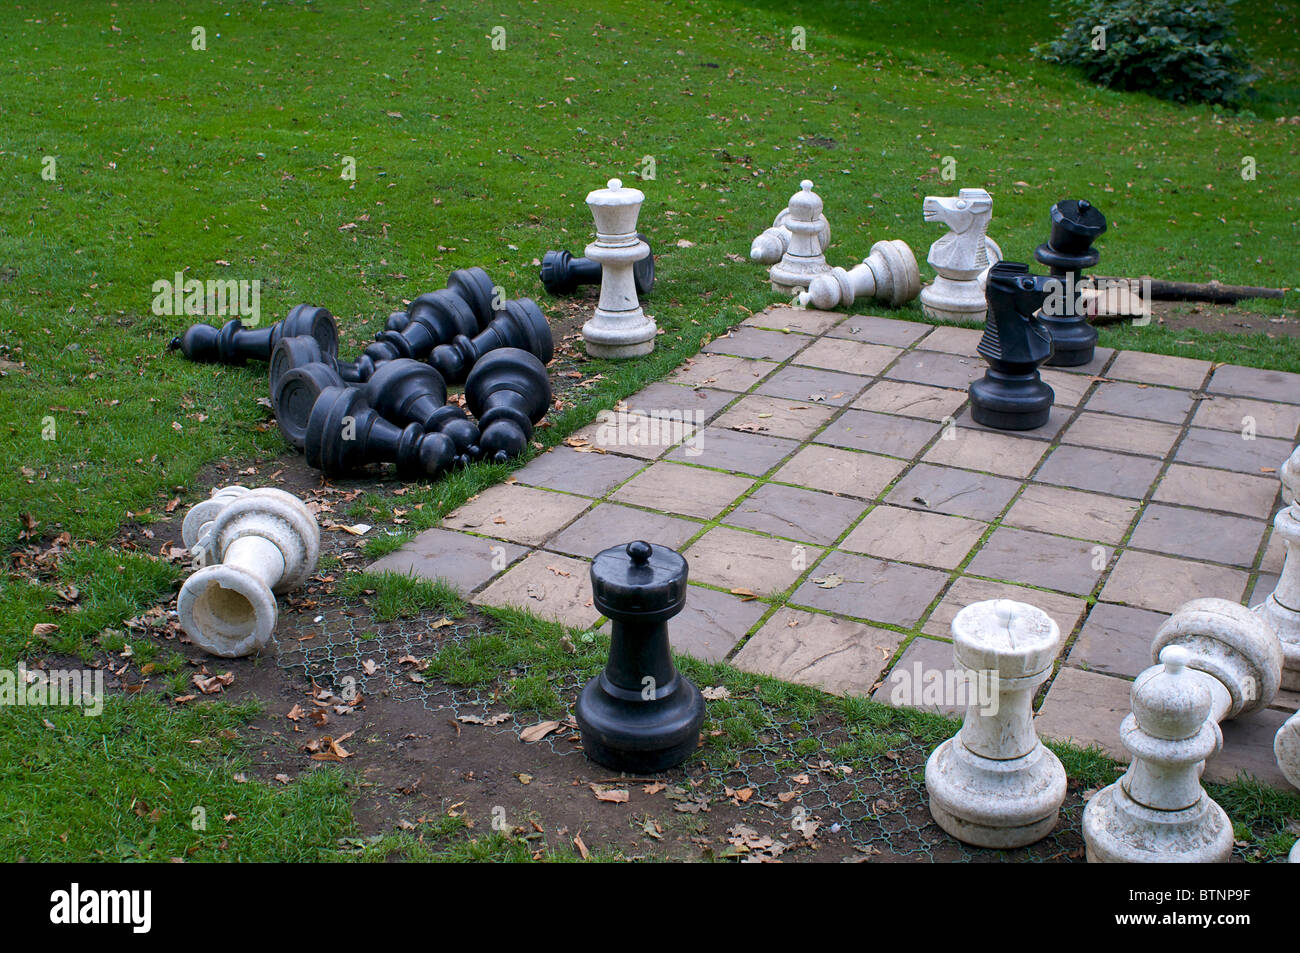 Charmant Outdoor Chess Set In A Grassy Area   Stock Image